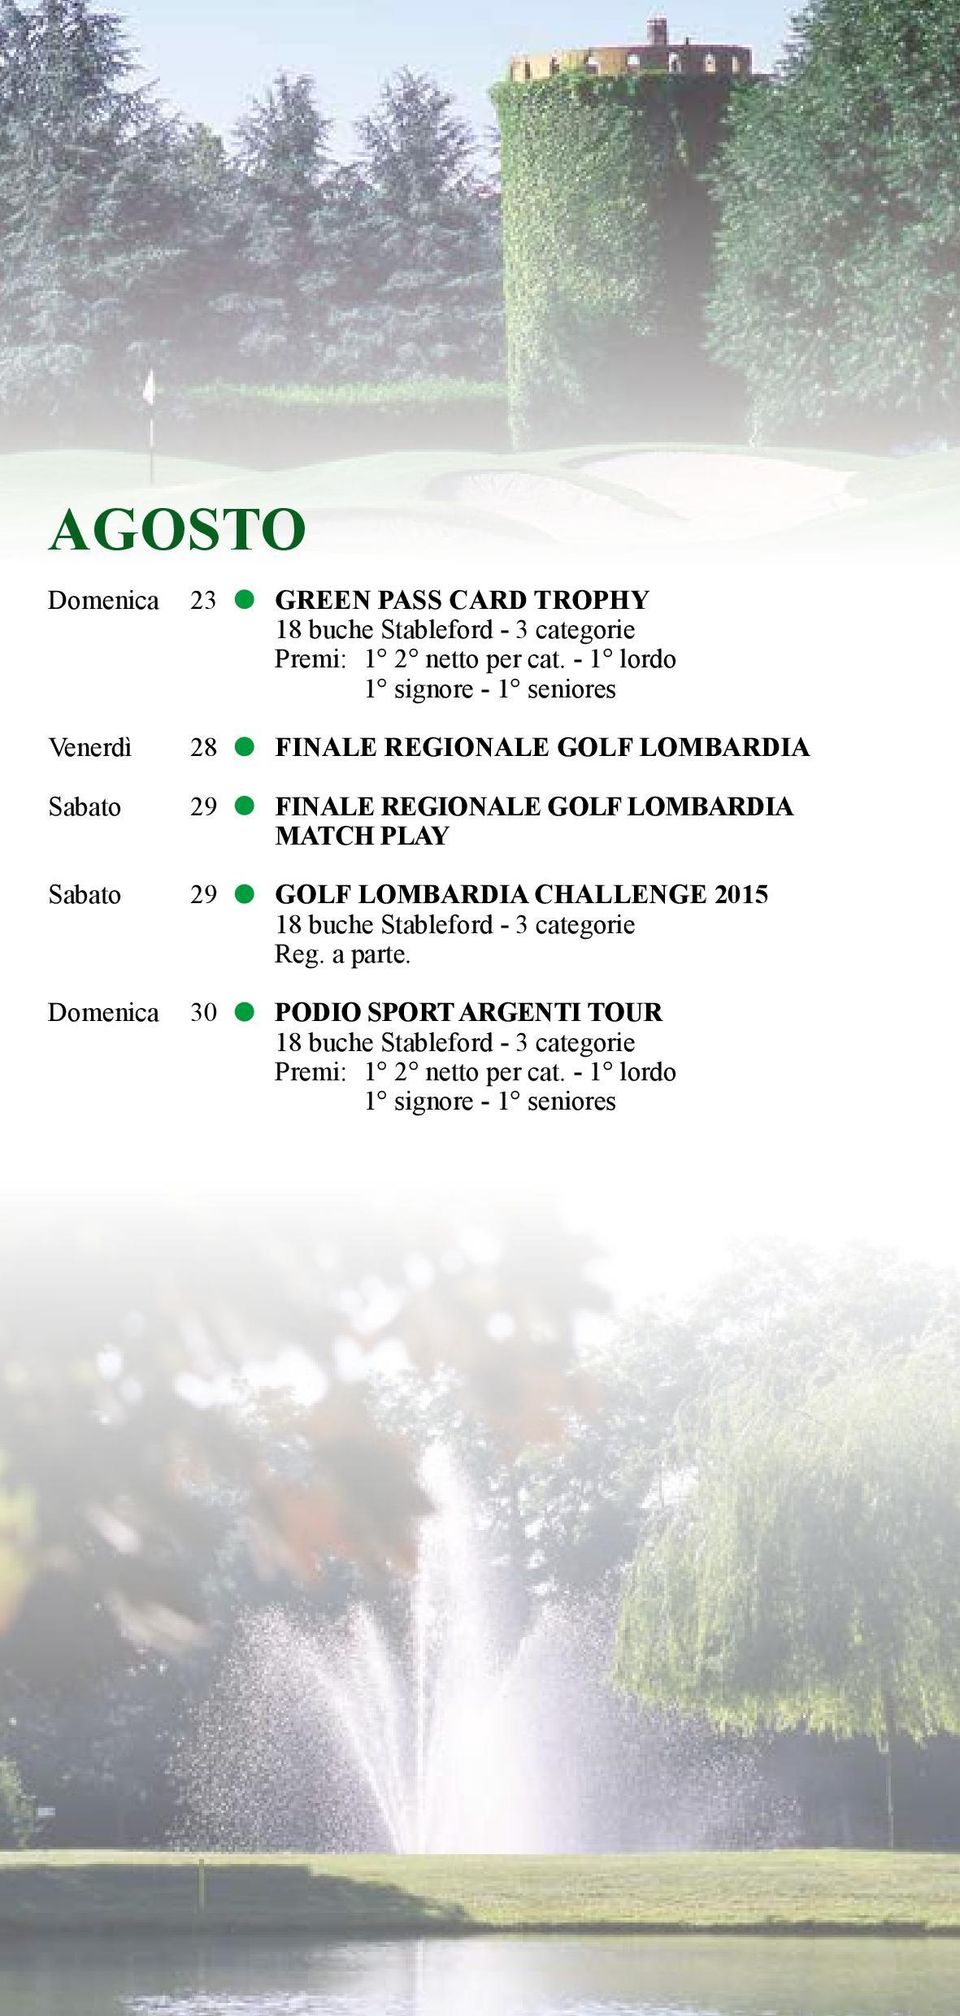 REGIONALE GOLF LOMBARDIA MATCH PLAY Sabato 29 GOLF